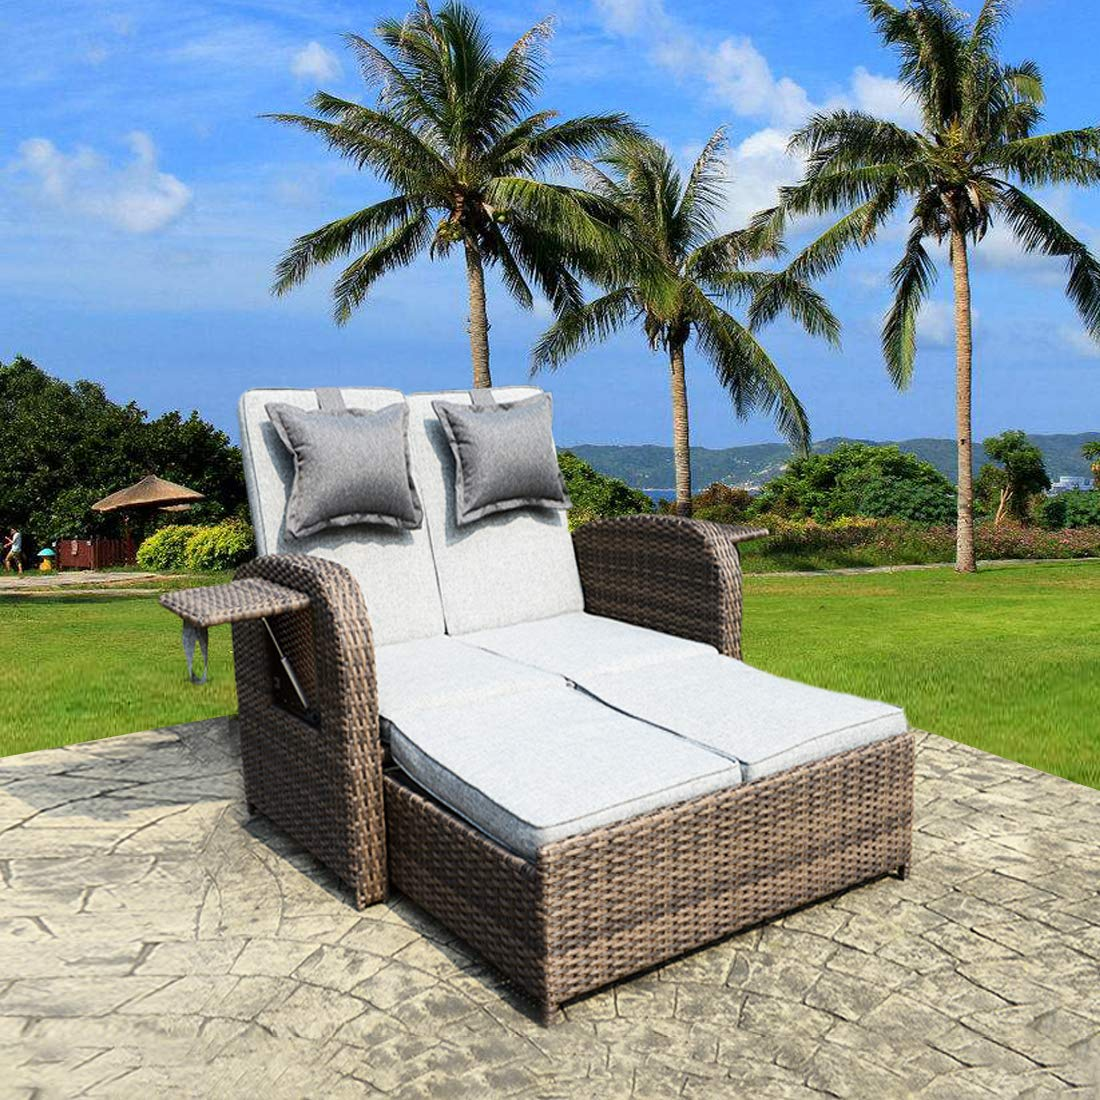 Loveseat Outdoor Wicker Furniture Cushions